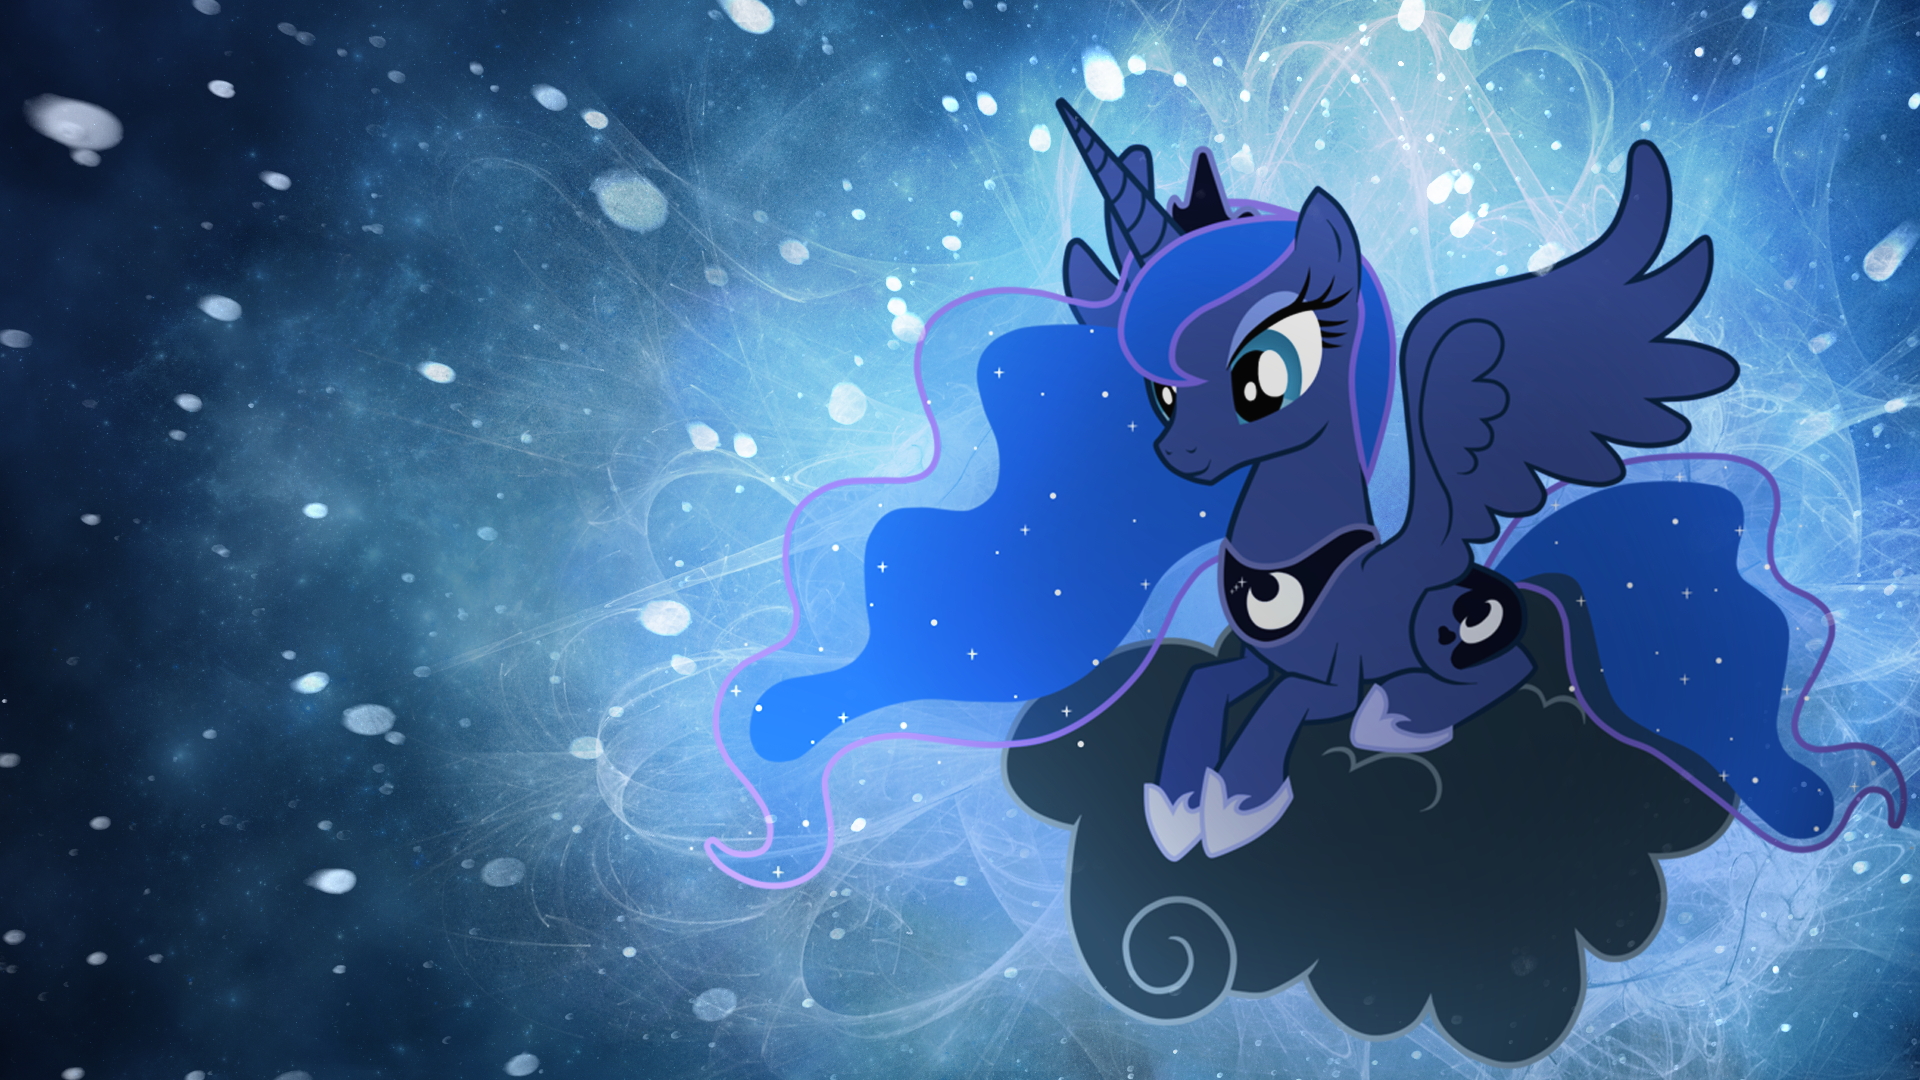 Good Wallpaper Horse Nightmare - 3c9bd8730be8f711a97d8792339473be  Perfect Image Reference_934240.png